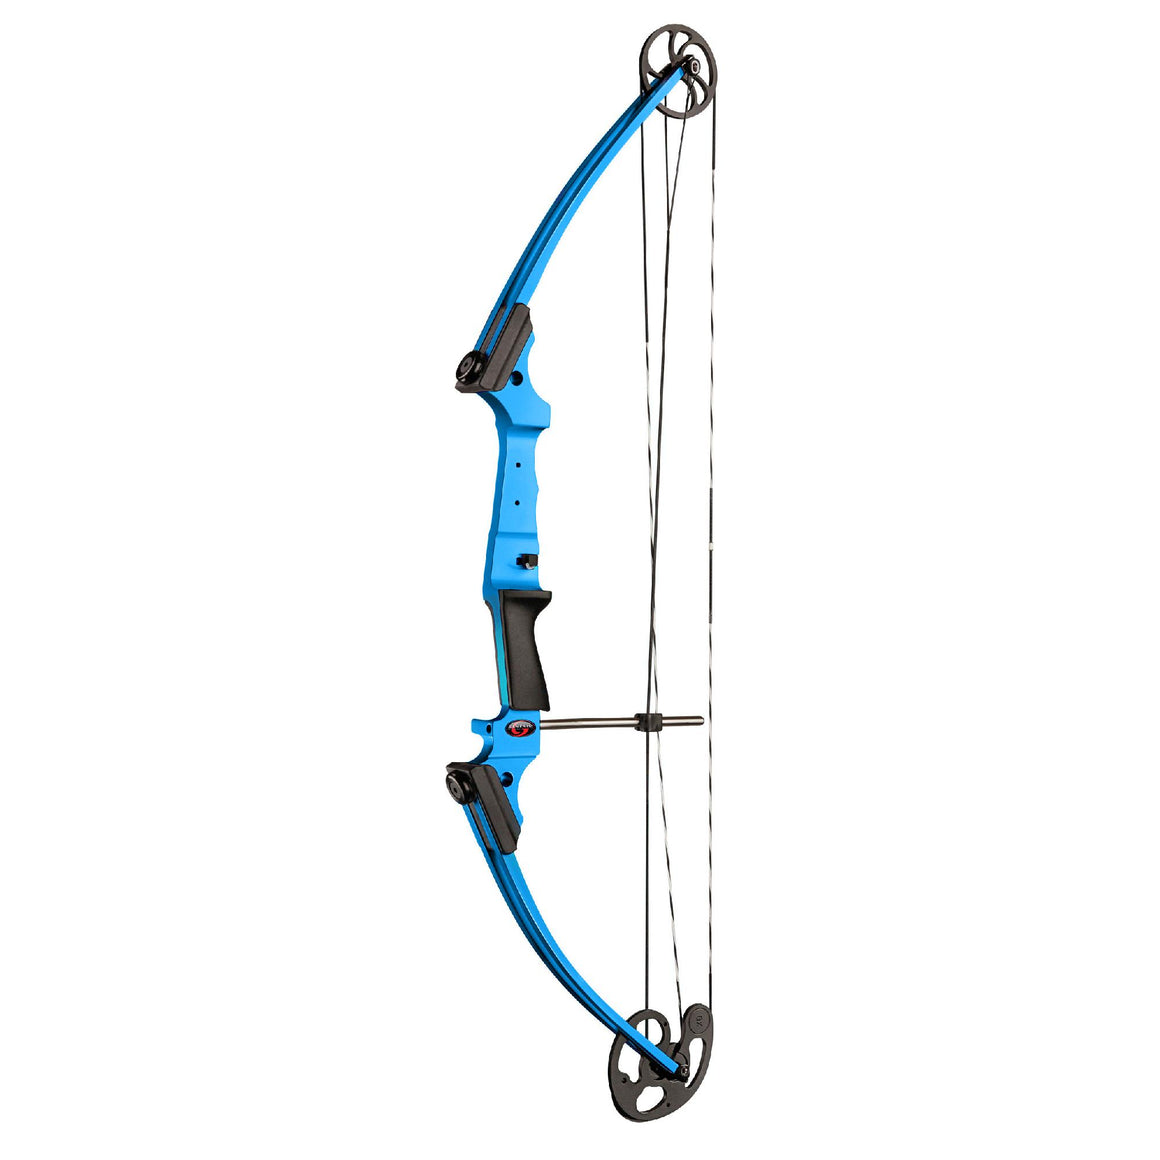 Original Bow - Right Handed, Blue